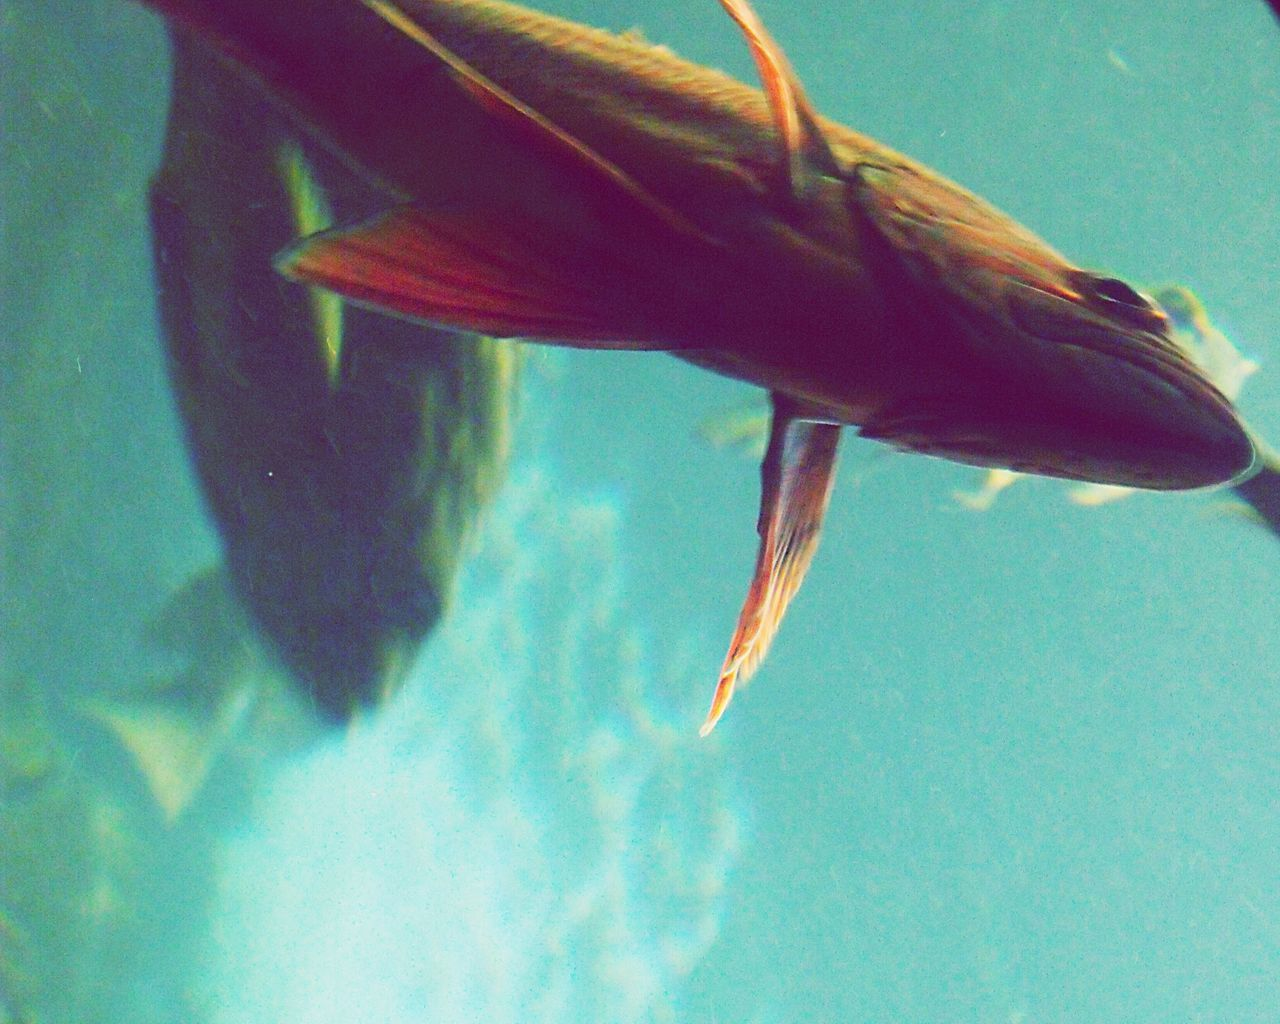 Fish swimming One Animal Animal Themes Swimming Underwater Sea Life Animals In The Wild Fish No People Water Sea UnderSea Animal Wildlife Nature Close-up Day Beauty In Nature Outdoors Orange Fish Carp Large Goldfish Green Water Surreal Weird Angle Fish Belly Out Of Focus EyeEmNewHere